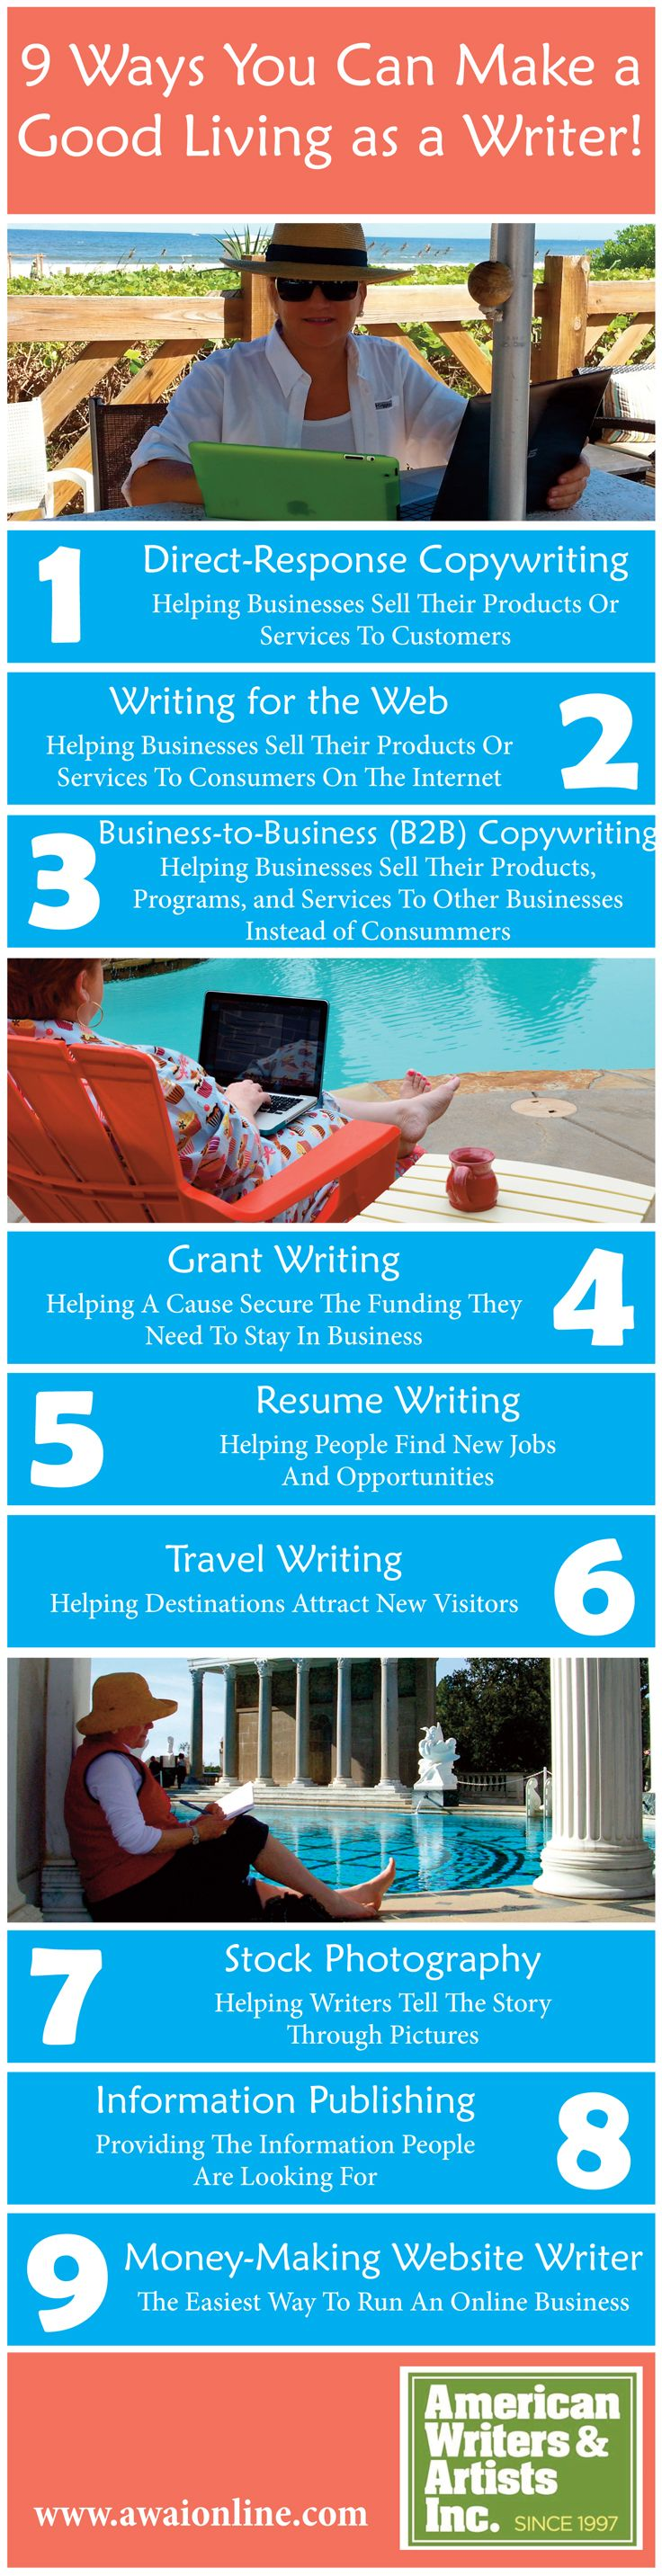 best images about barefoot writer career discover 9 ways you can make a very good living as a writer